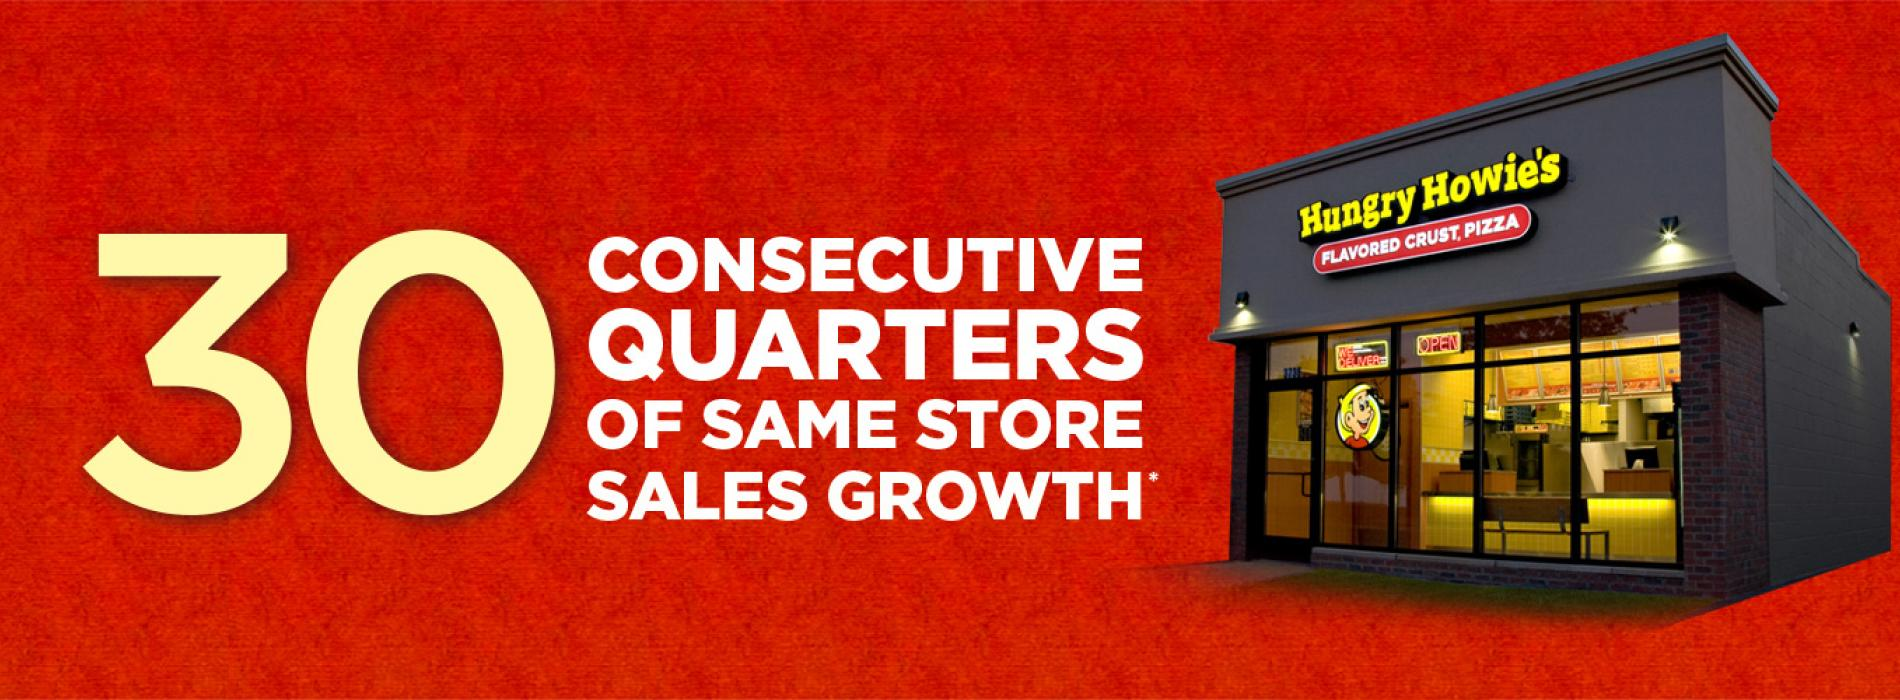 consecutive quarters of same stores sales growth